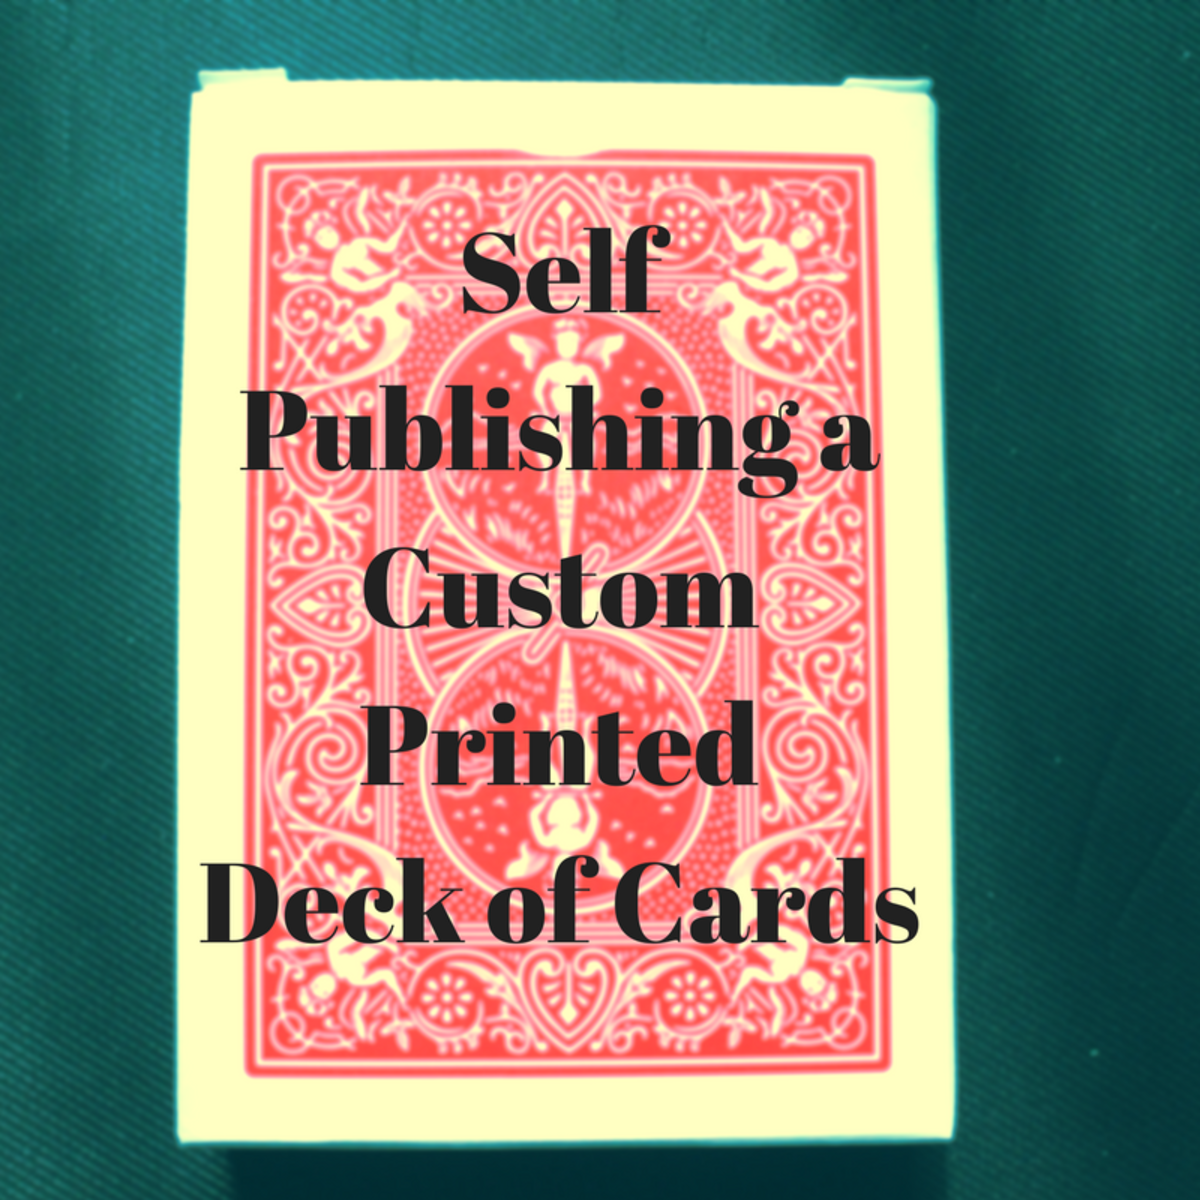 Self-Publishing a Custom-Printed Deck of Cards